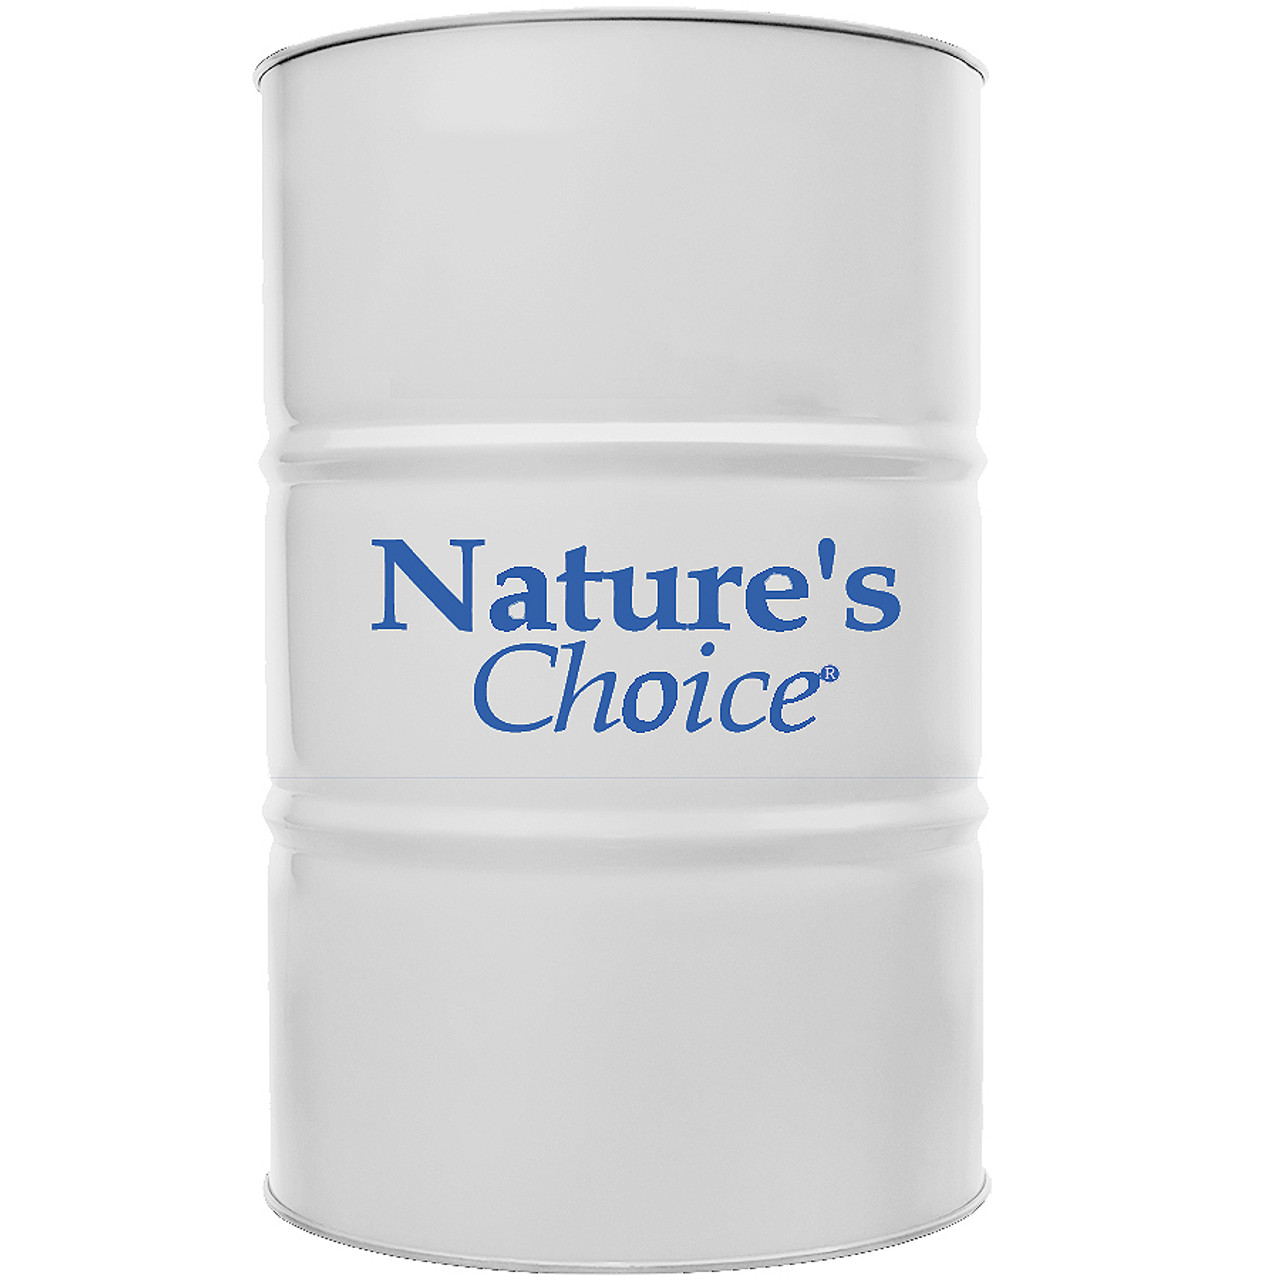 Nature's Choice Re-Refined Automatic Transmission Fluid M/D III